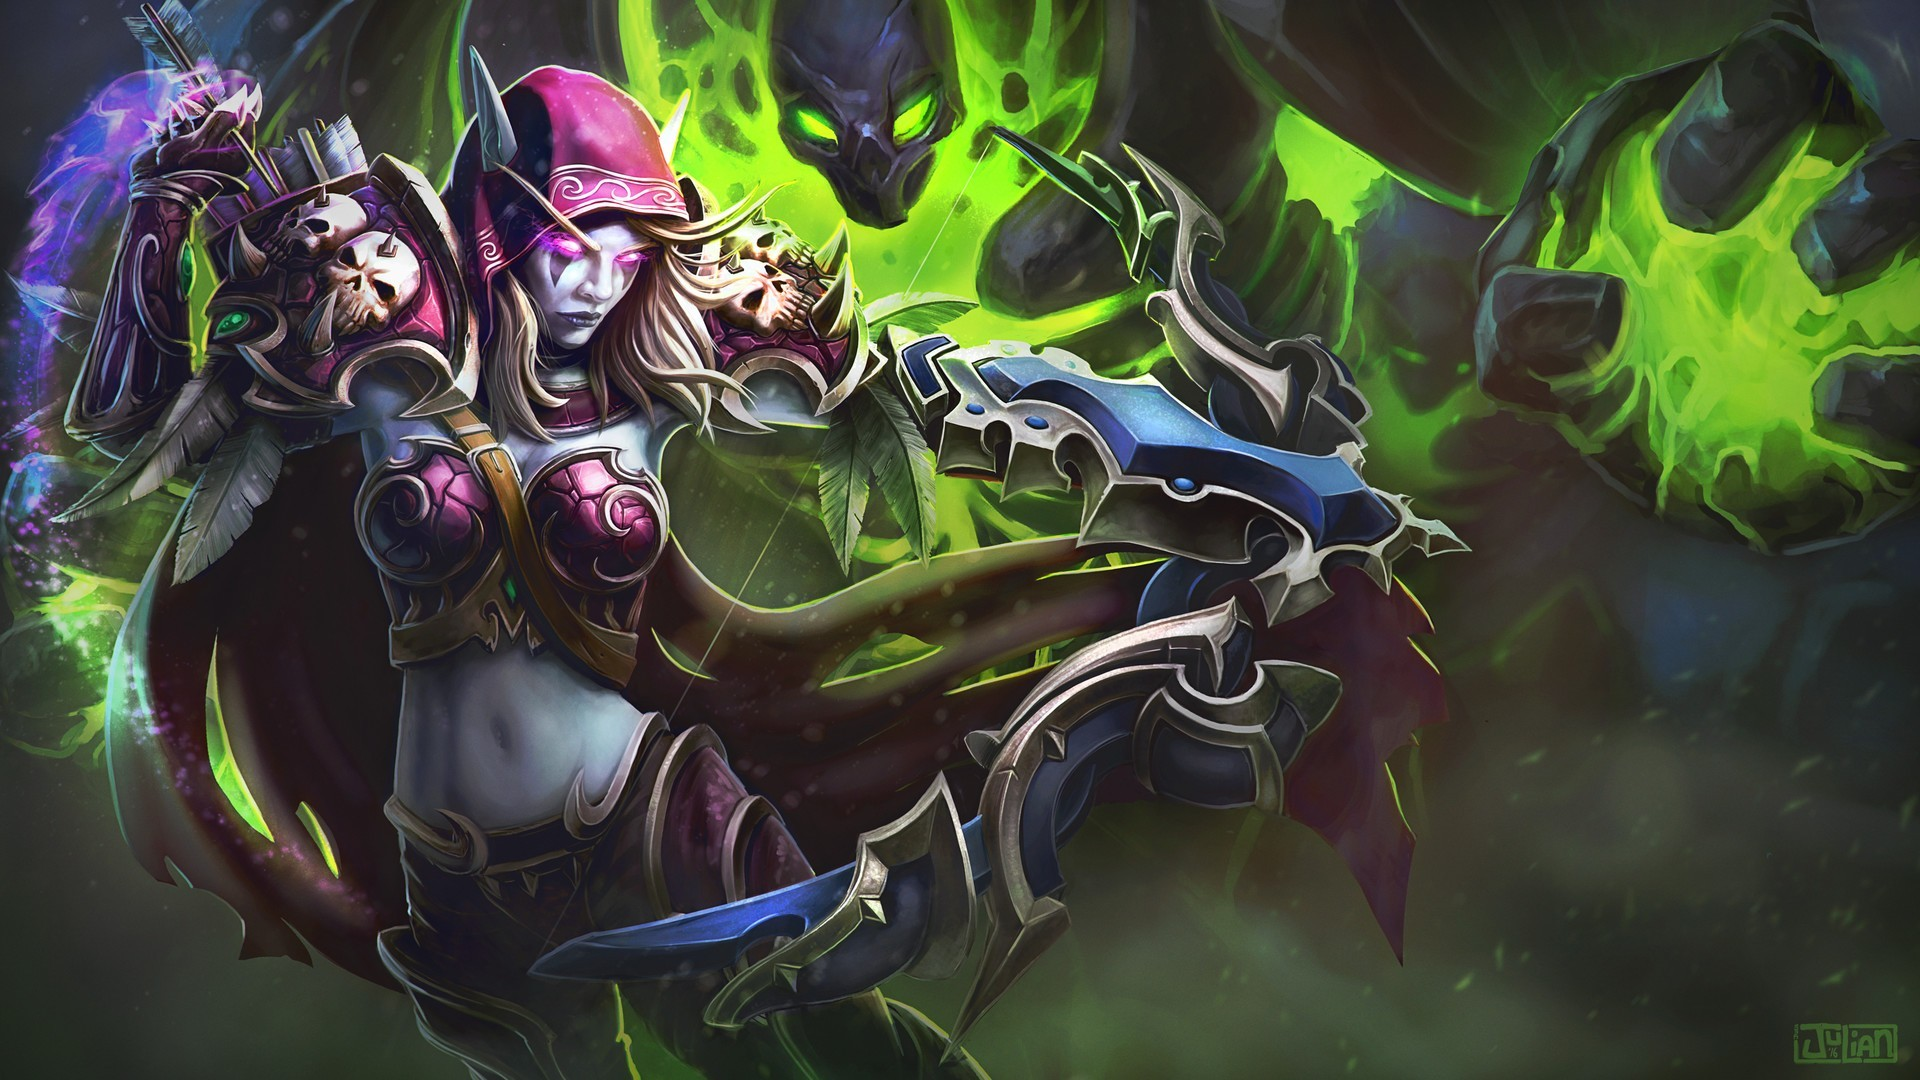 Res: 1920x1080, Sylvanas Windrunner, World of Warcraft, Video games, Bow, Arrows, Fantasy girl  Wallpapers HD / Desktop and Mobile Backgrounds